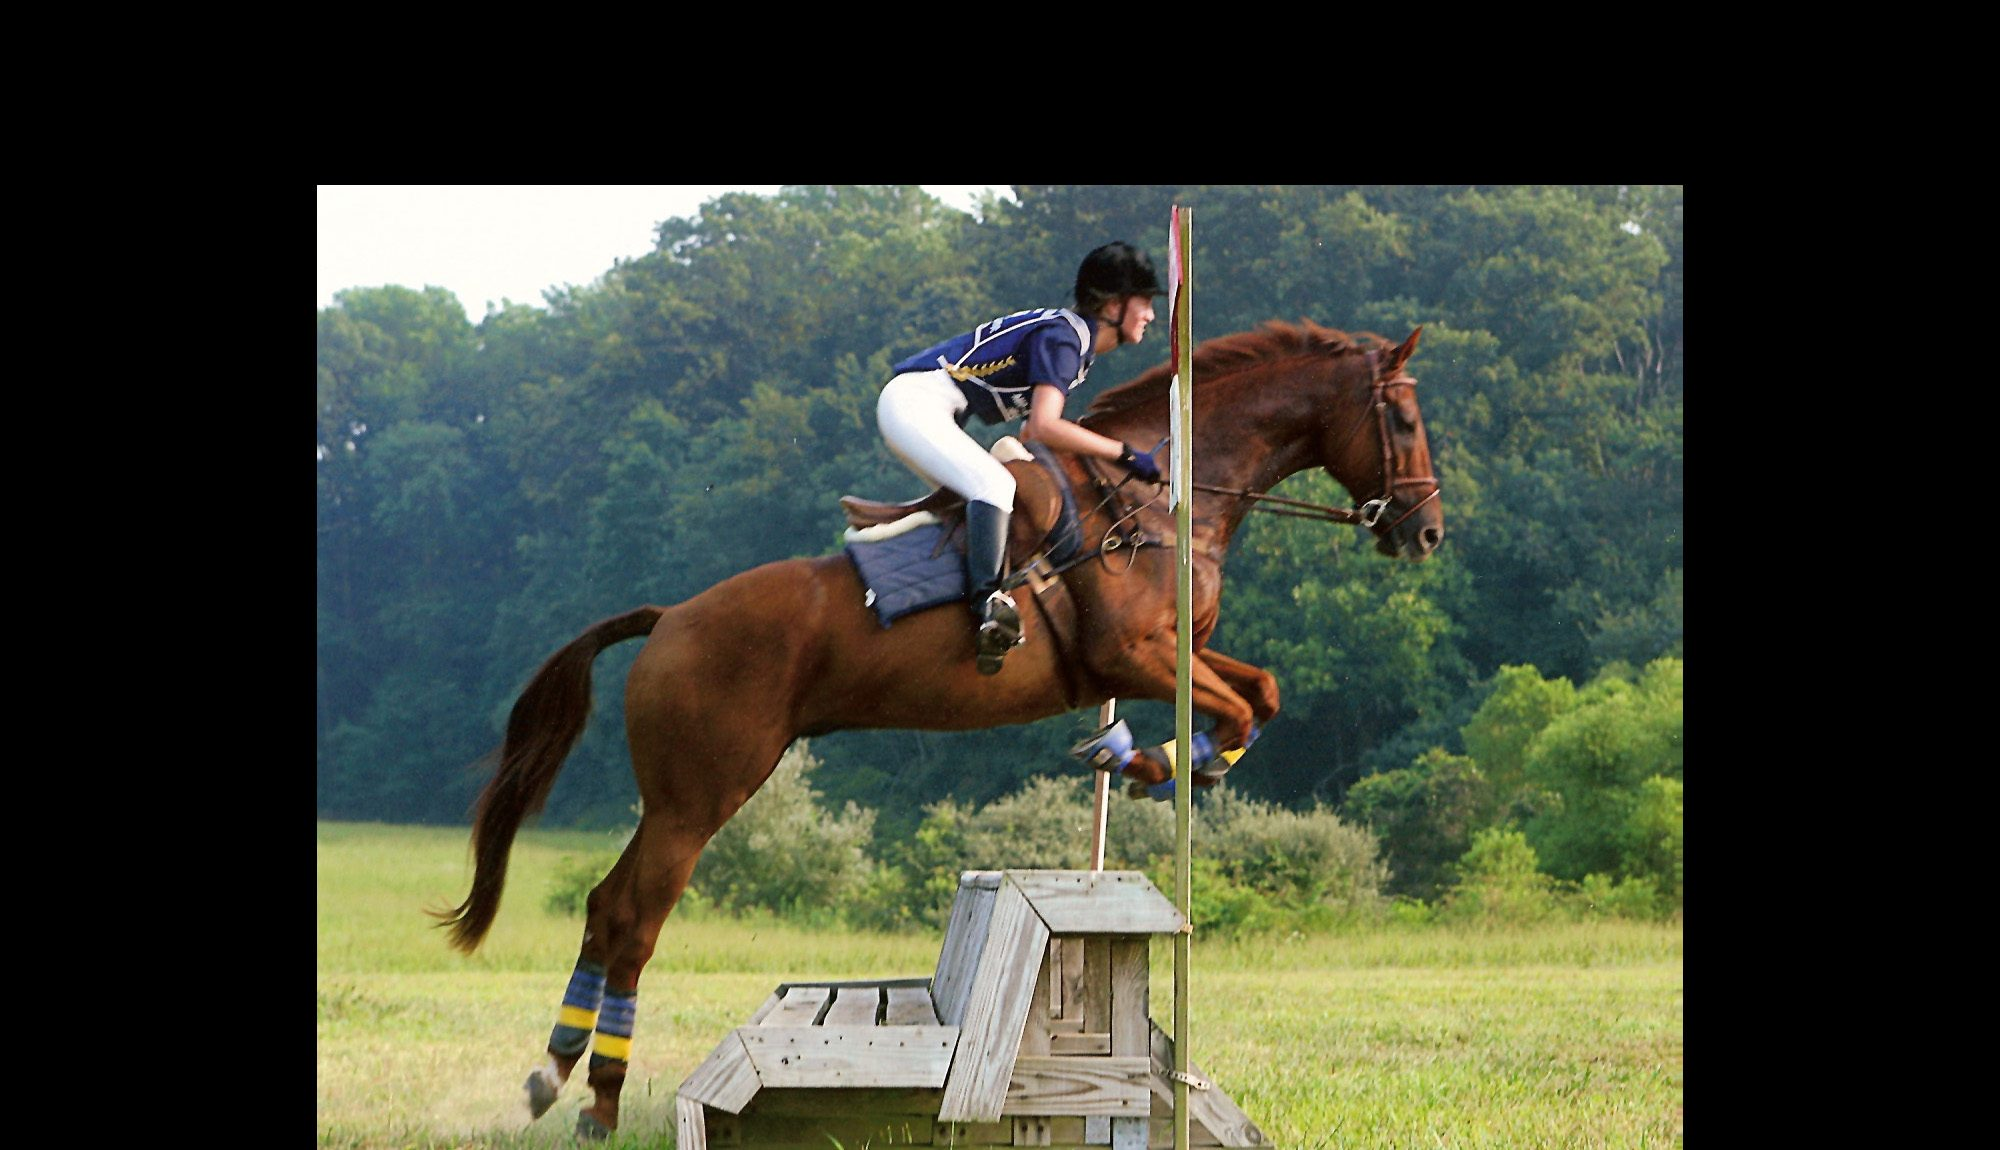 Rider jumping a cross country fence on a chestnut gelding